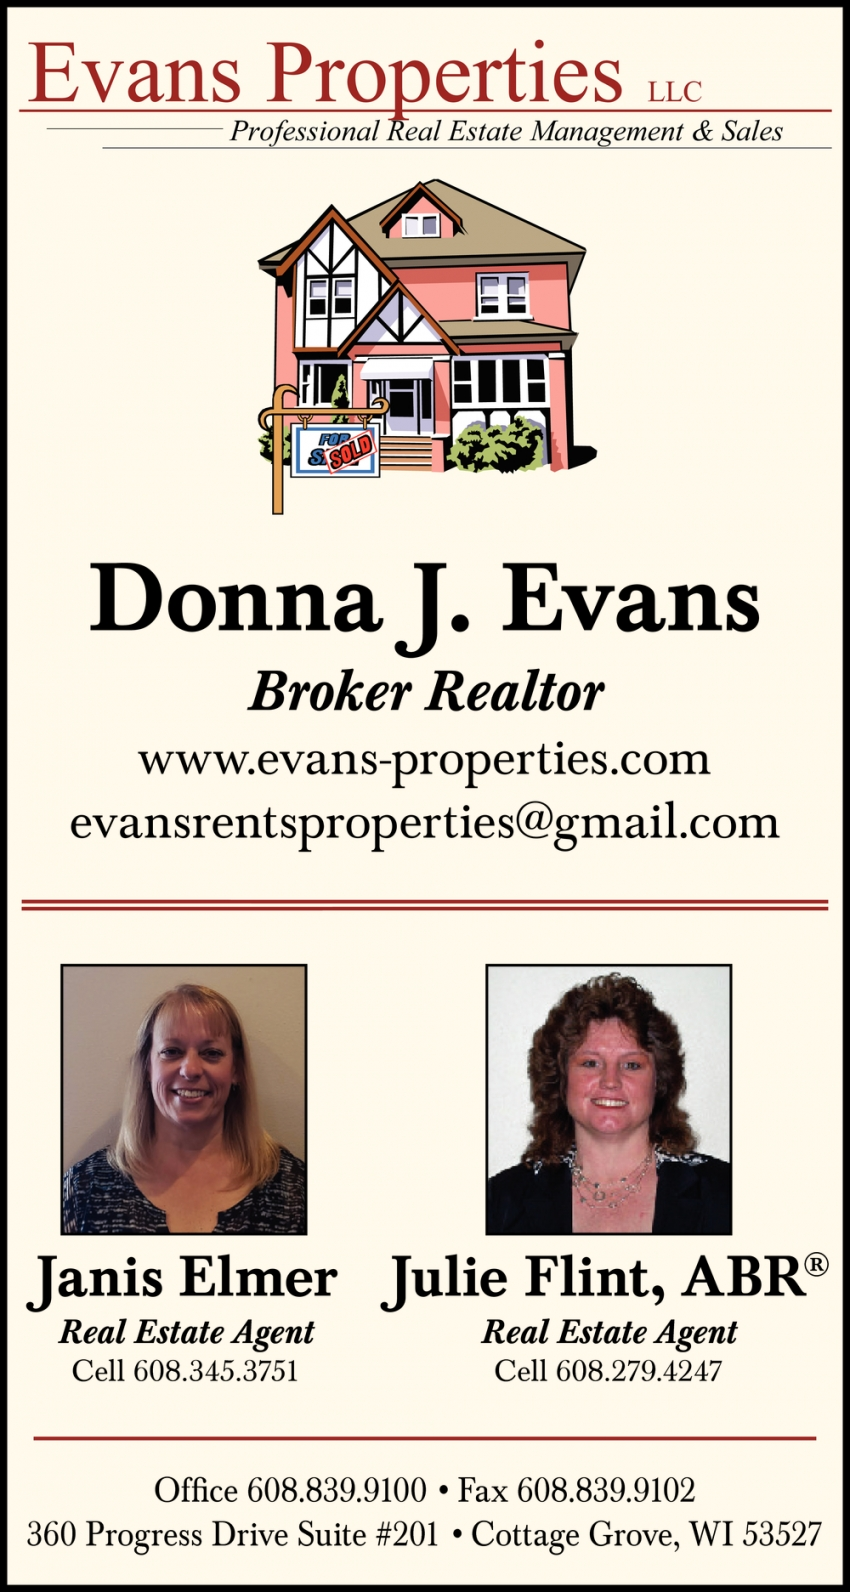 Professional Real Estate Management & Sales